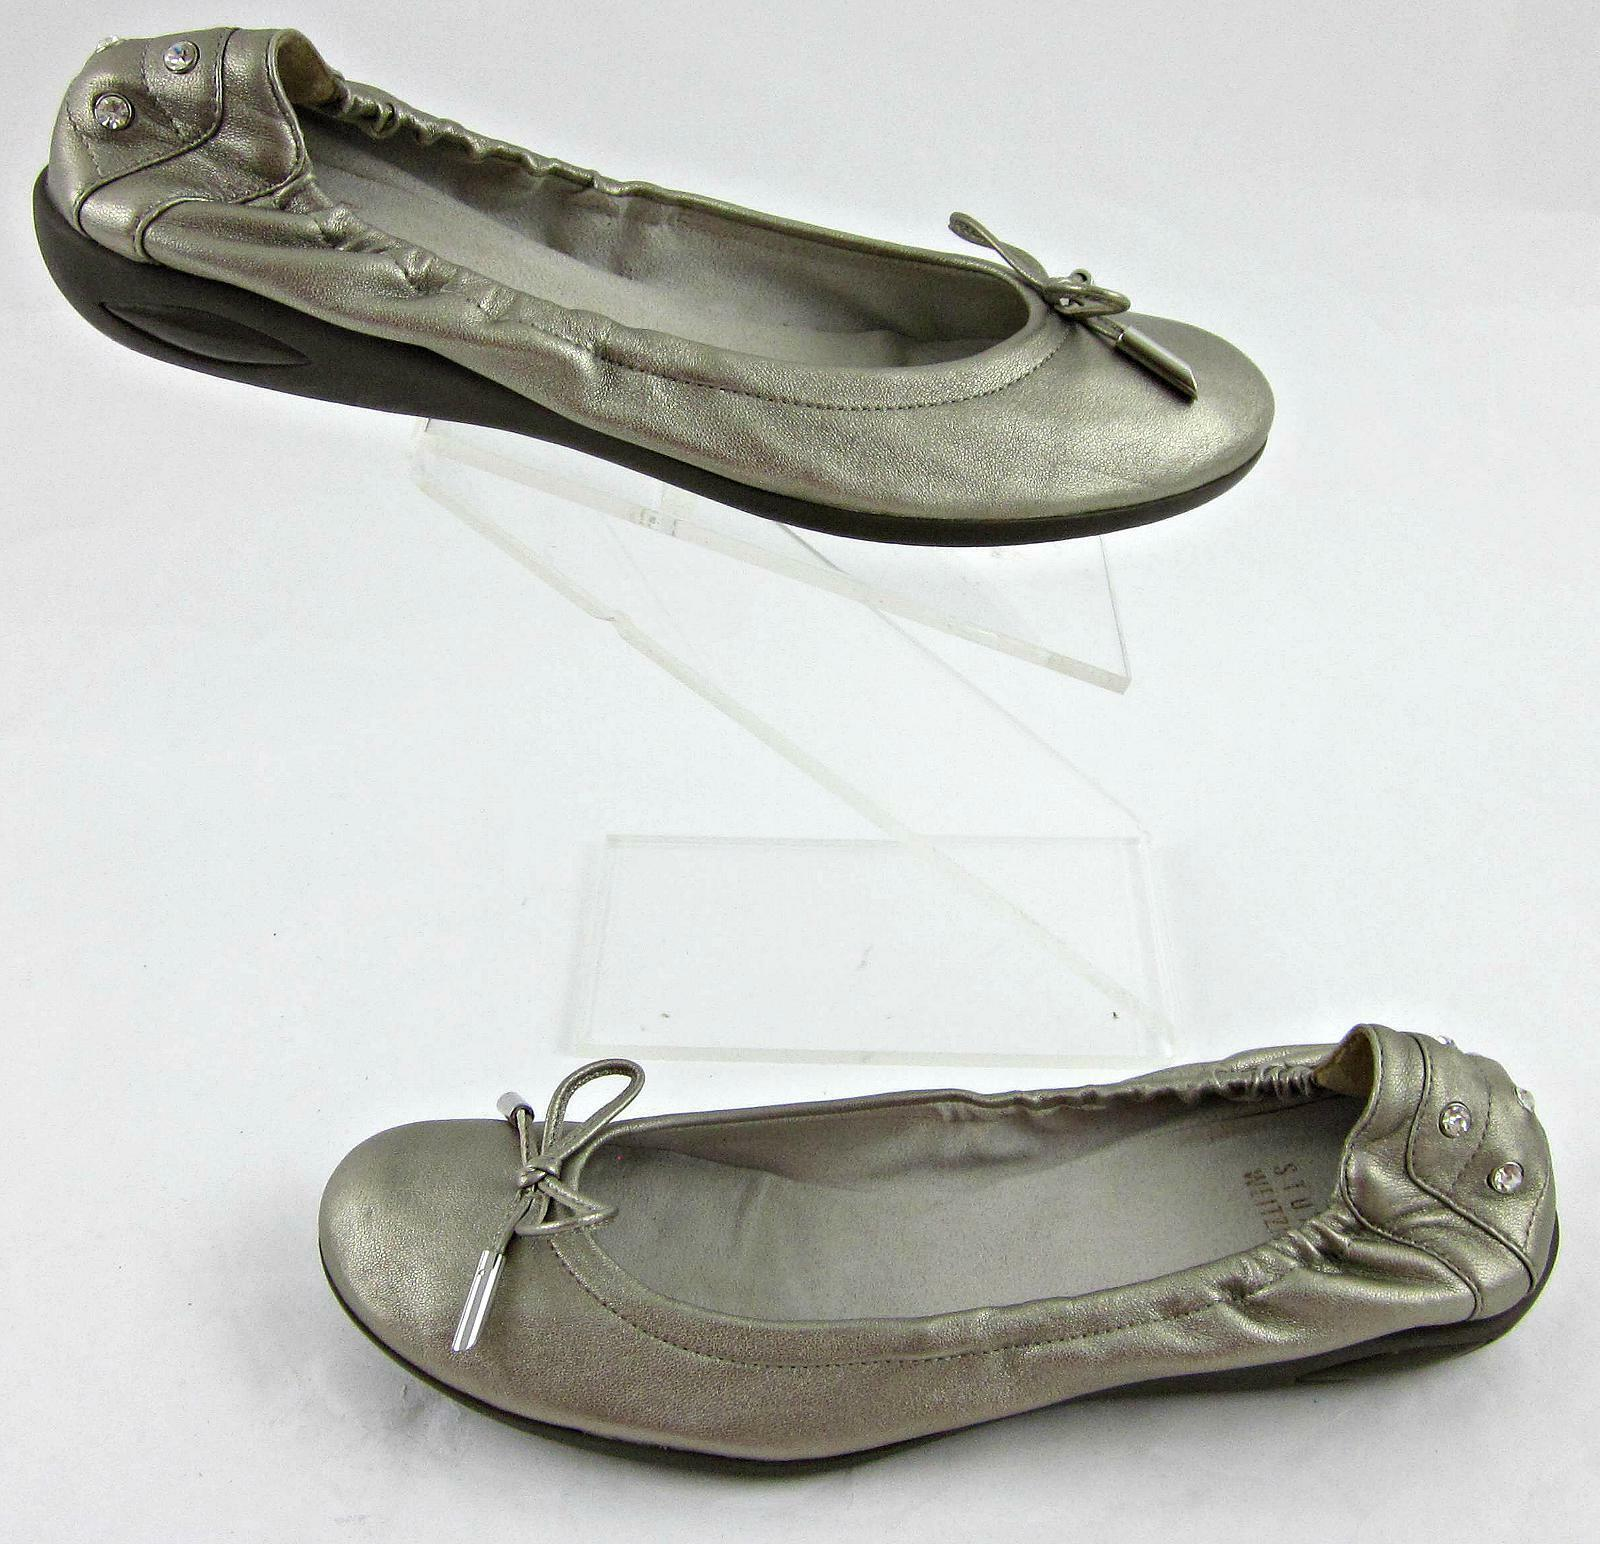 Stuart Weitzman Bow Tie Ballet Flats Bejeweled Heel Accents Pewter Leather 6M